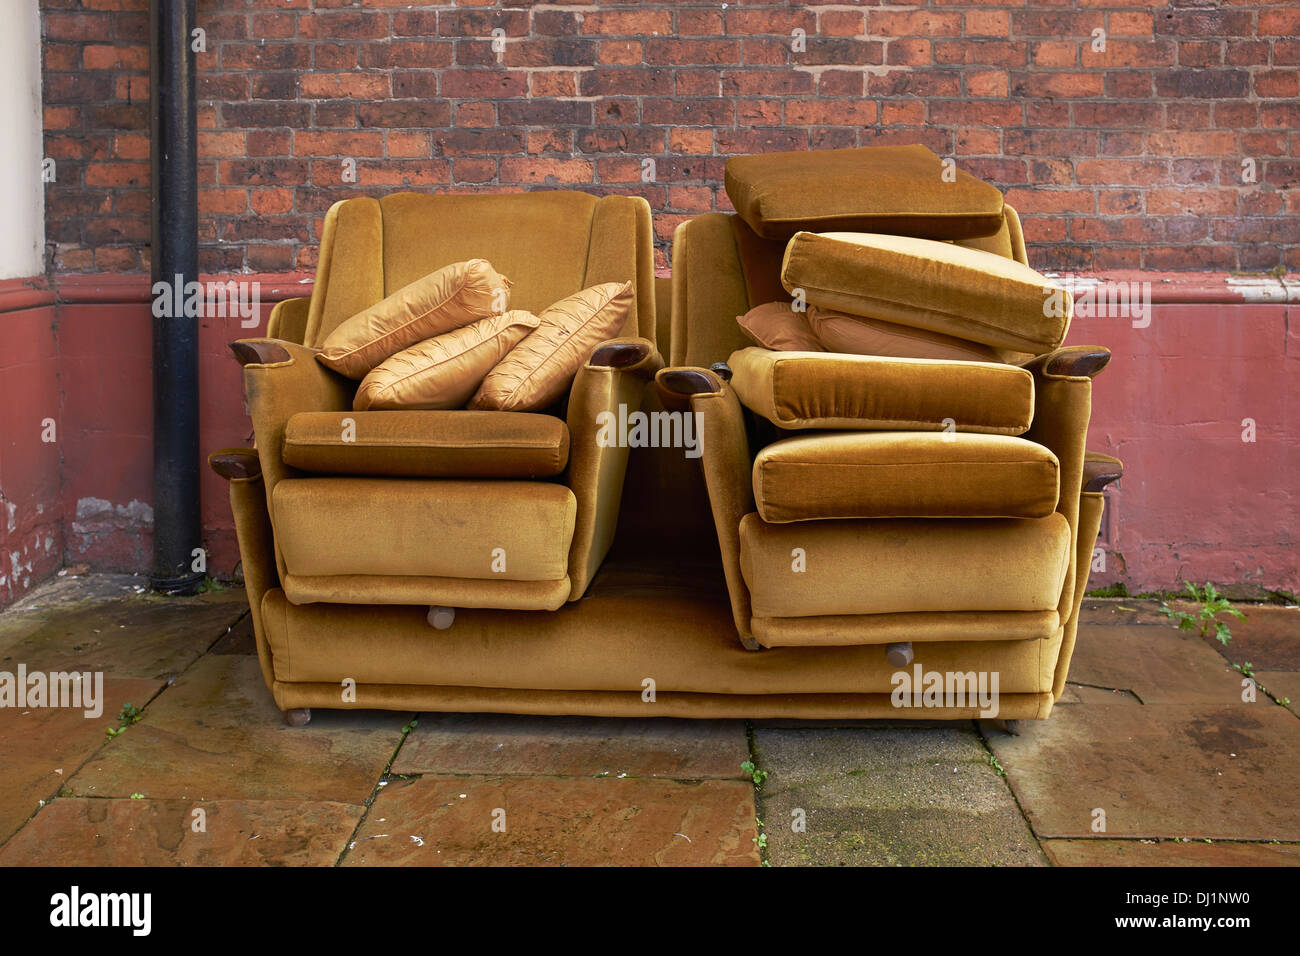 Old sofa left outside in the rain - Stock Image